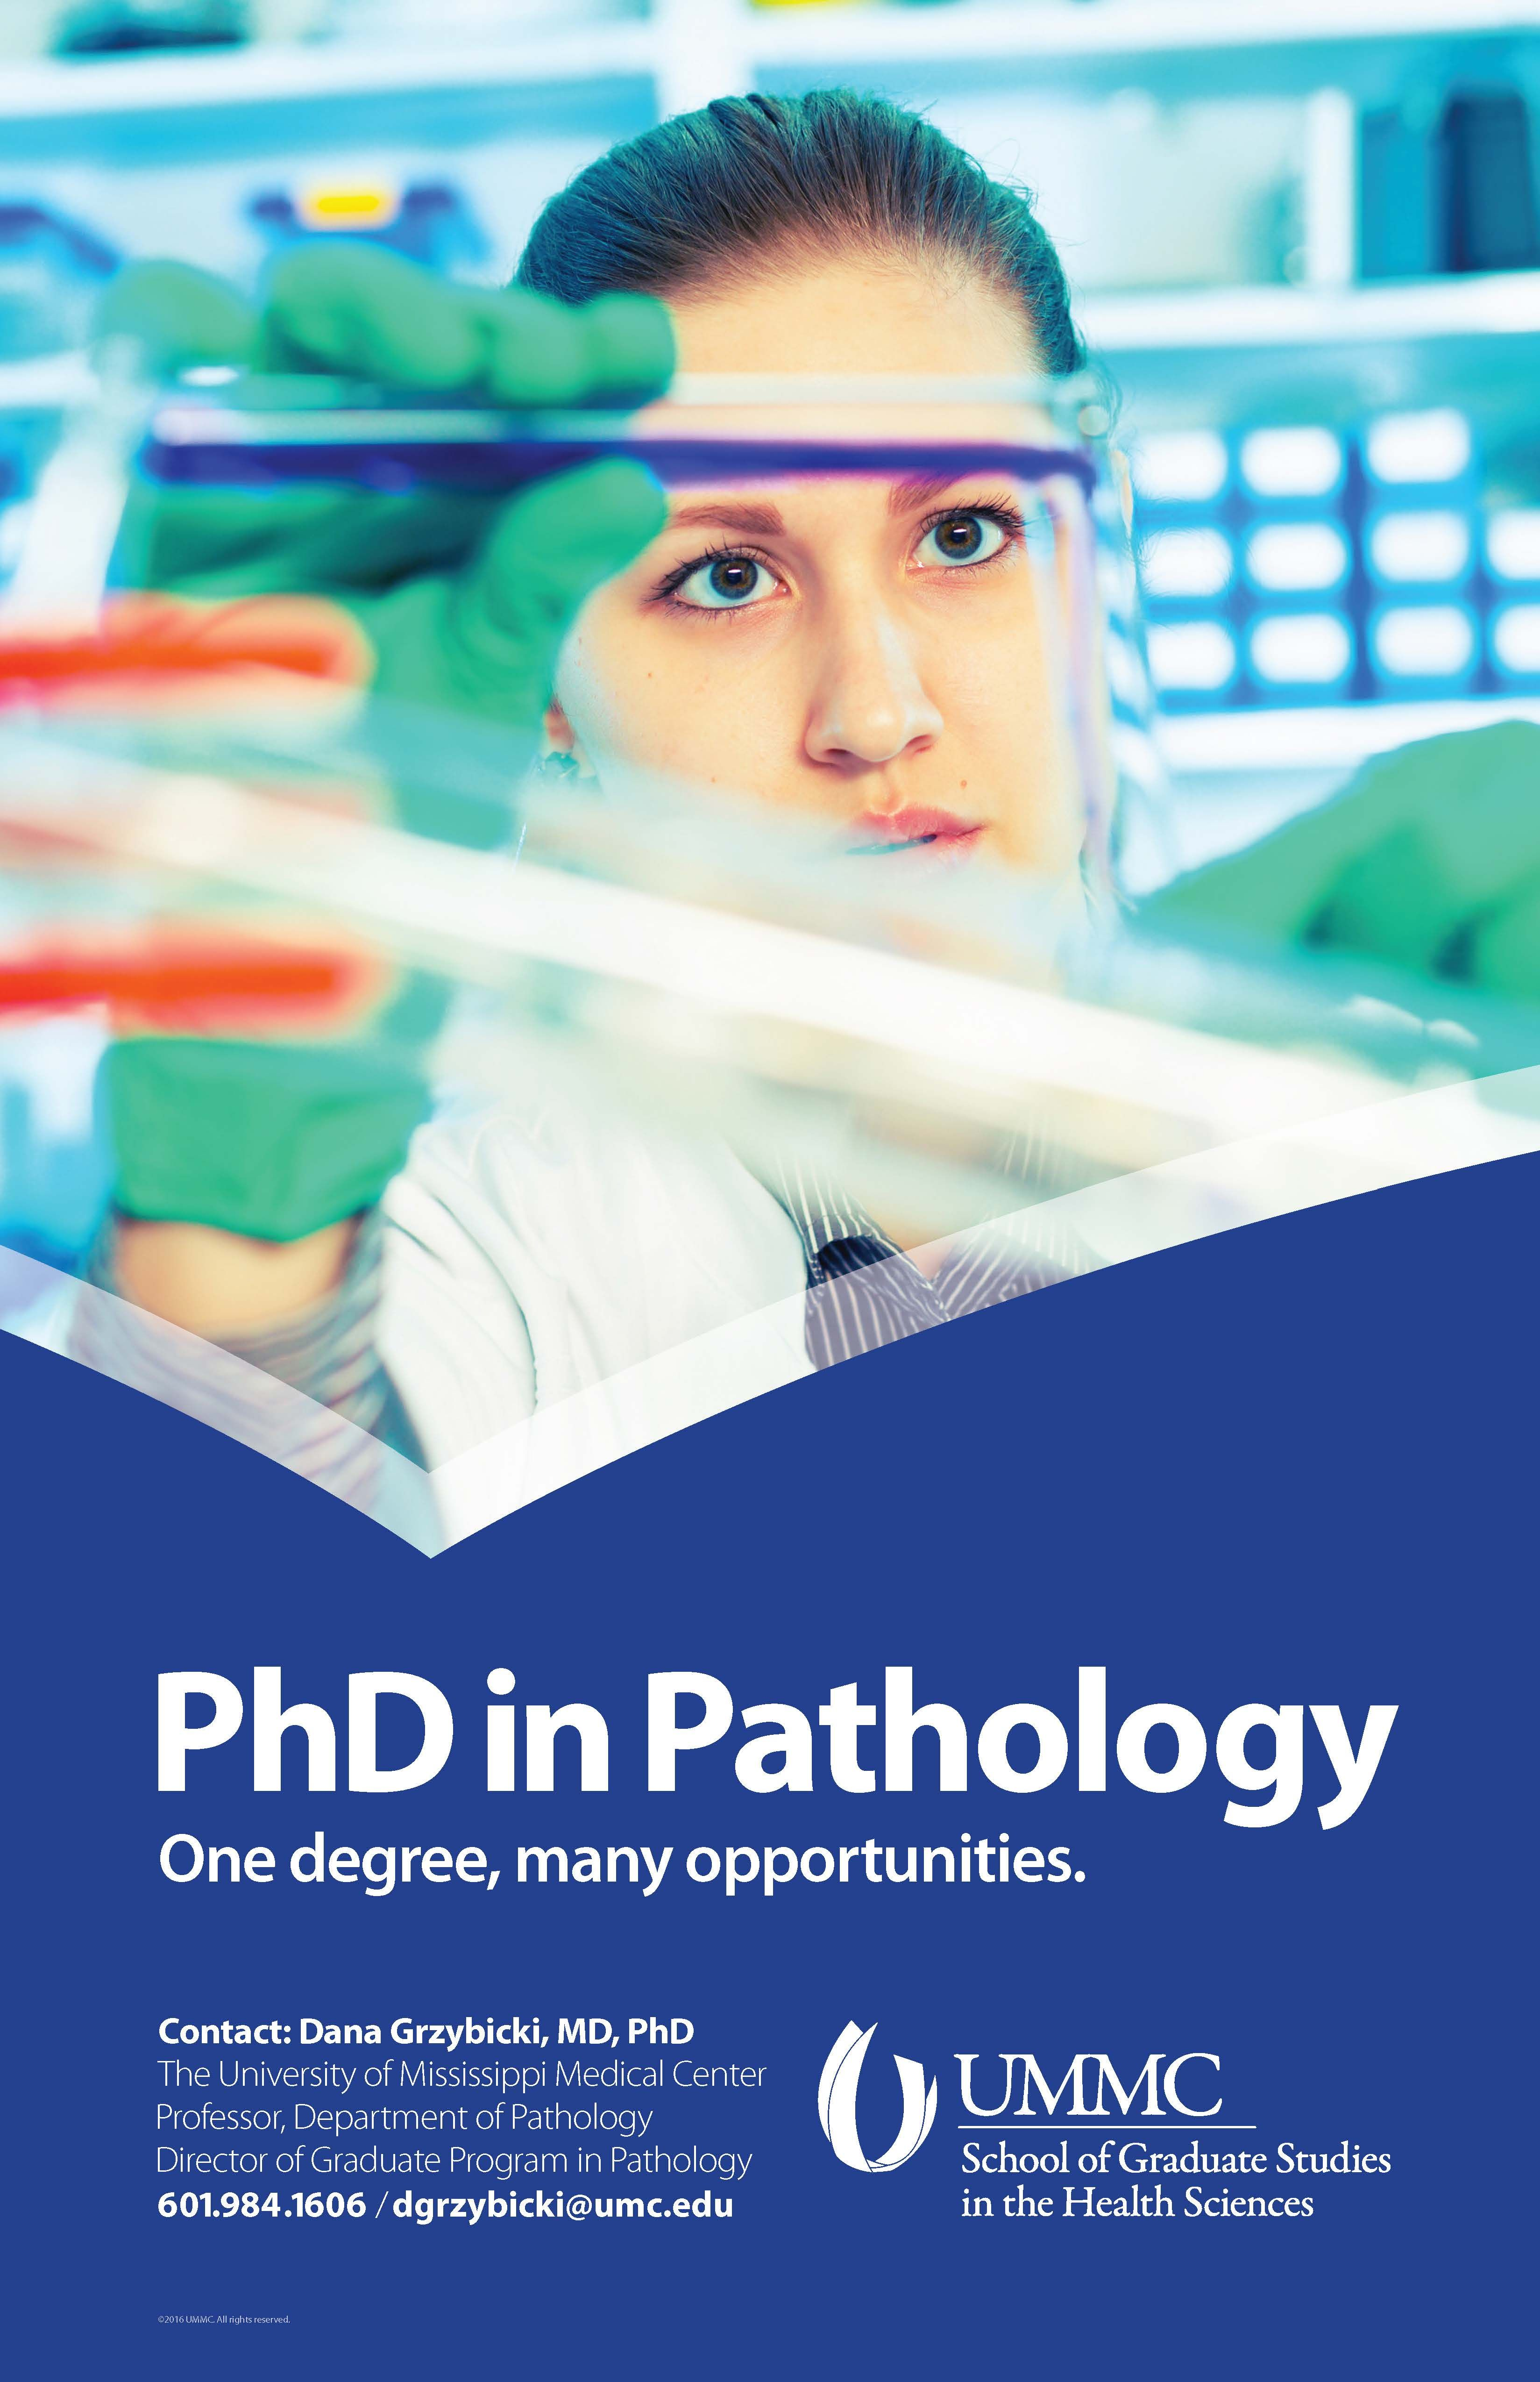 UMMC PhD in Pathology Poster (Nov. 2016) (With images